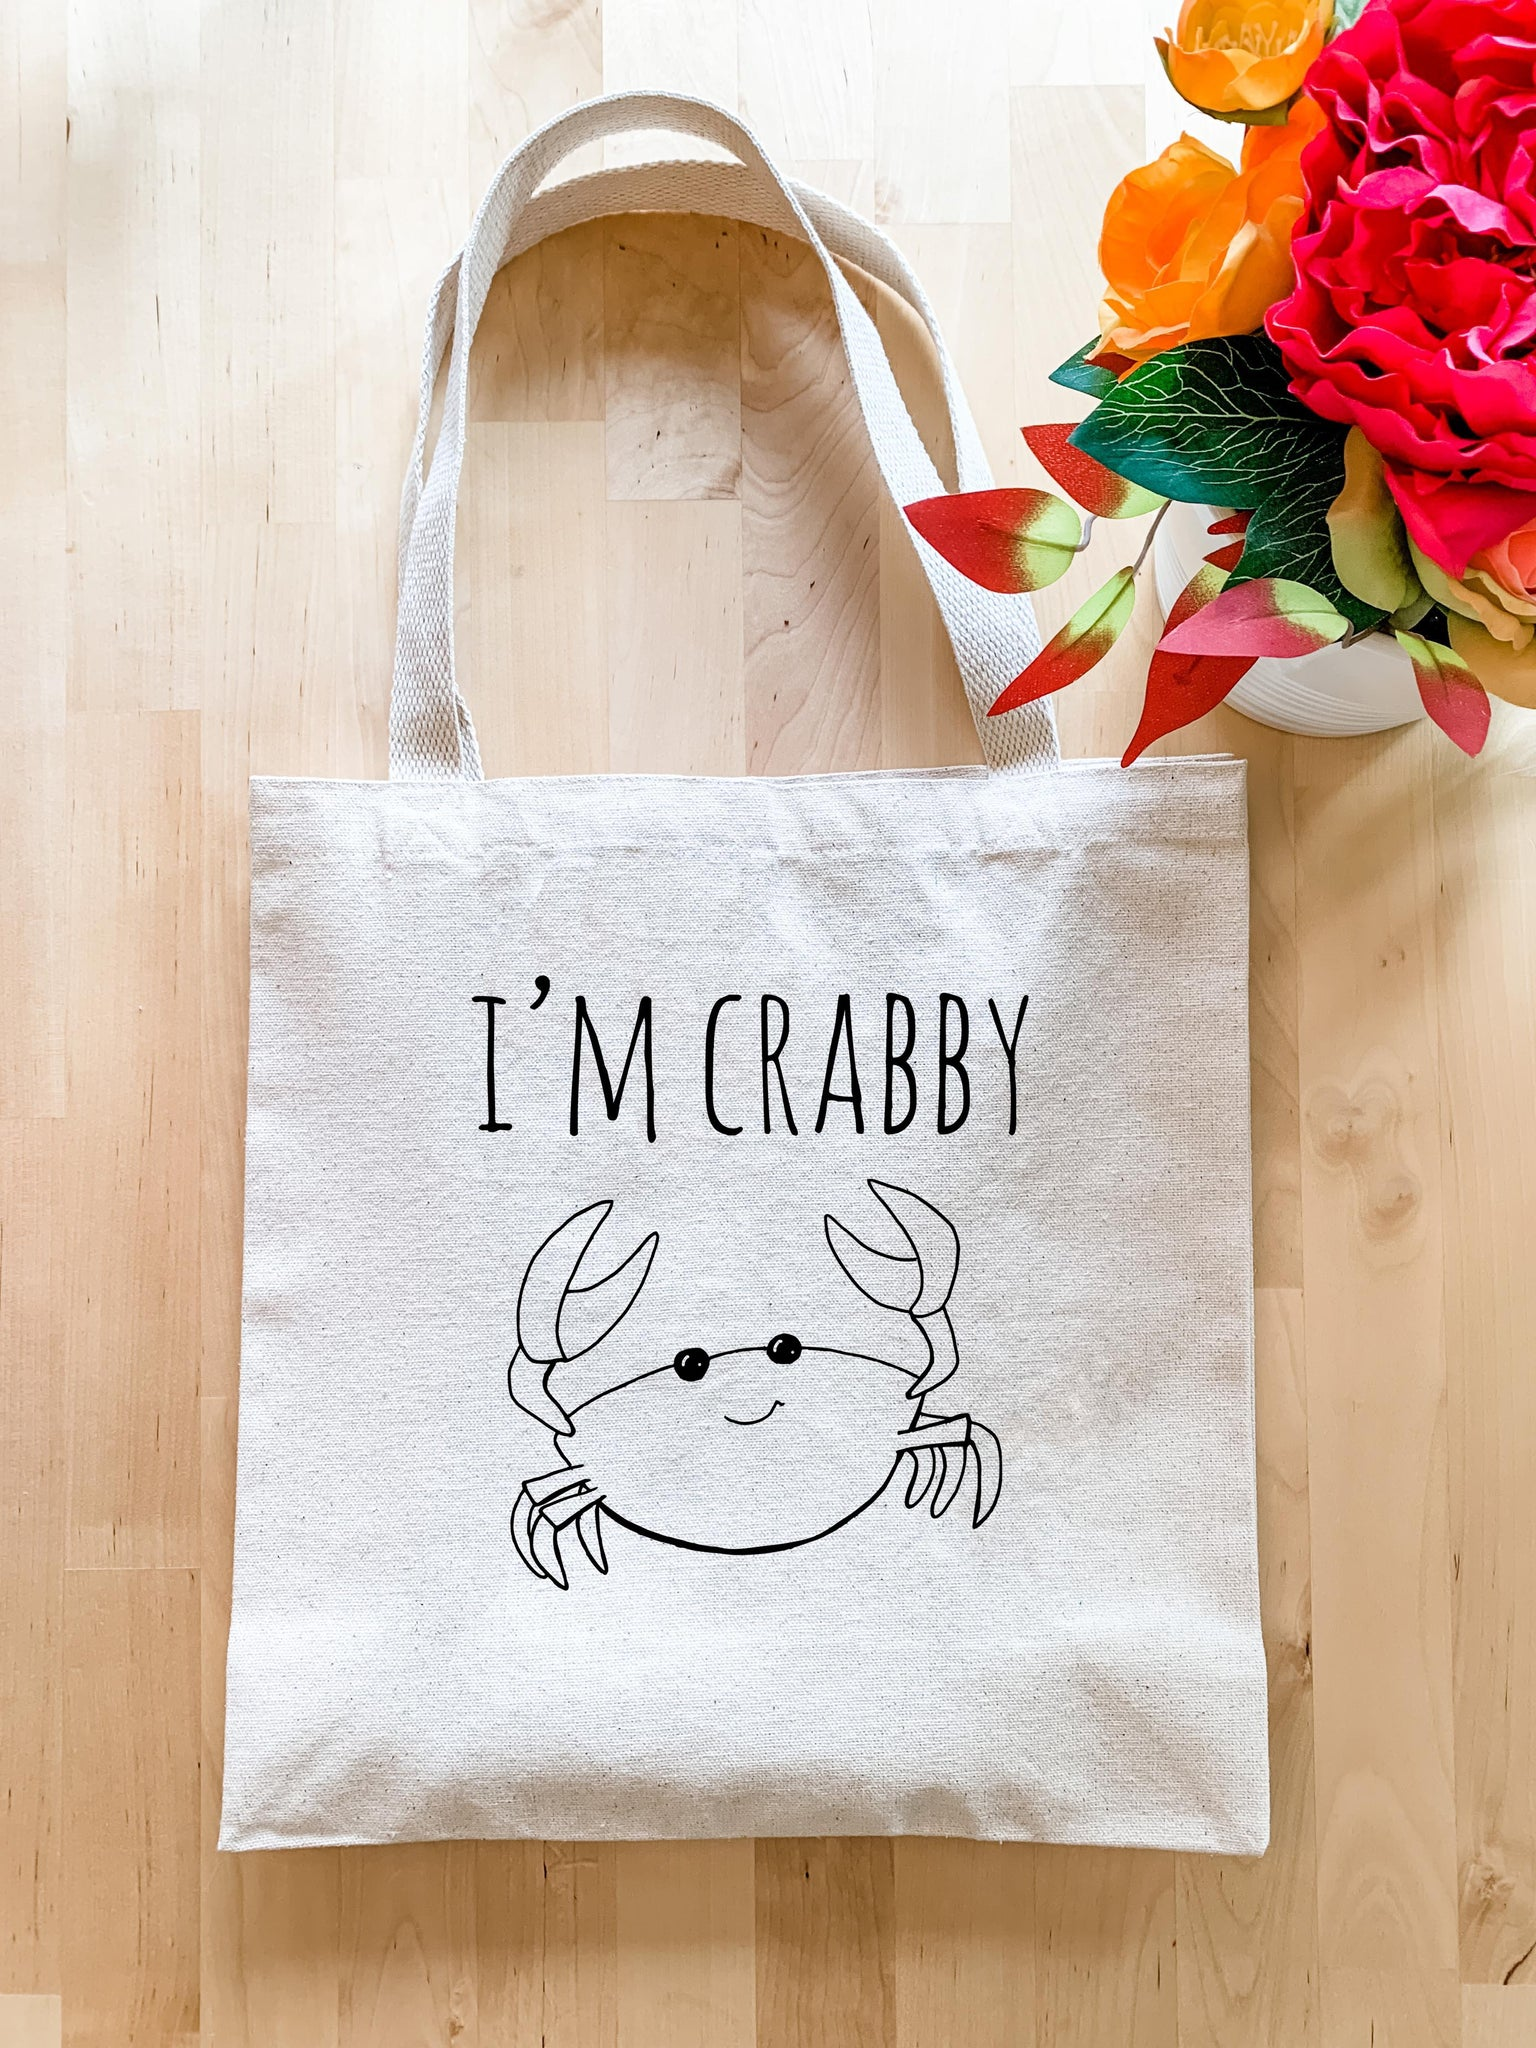 I'm Crabby - Tote Bag - MoonlightMakers